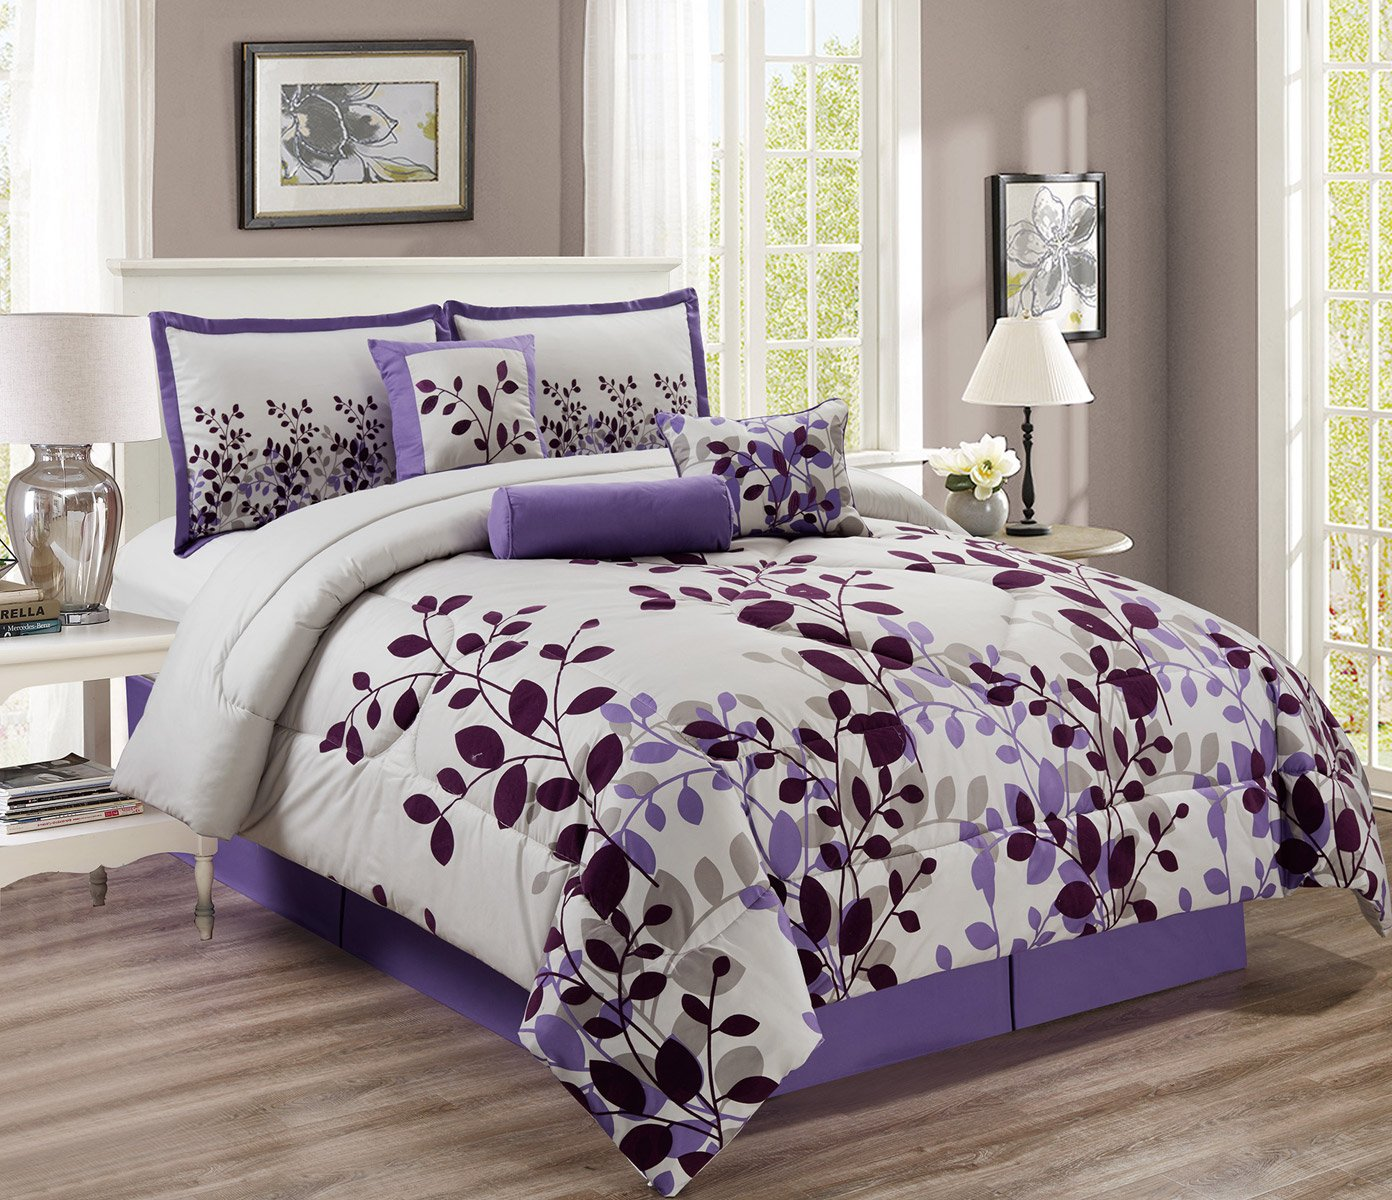 7 Piece Purple, Lavender, Grey Flocking Comforter Set Vine Bed In A Bag Queen Size Bedding